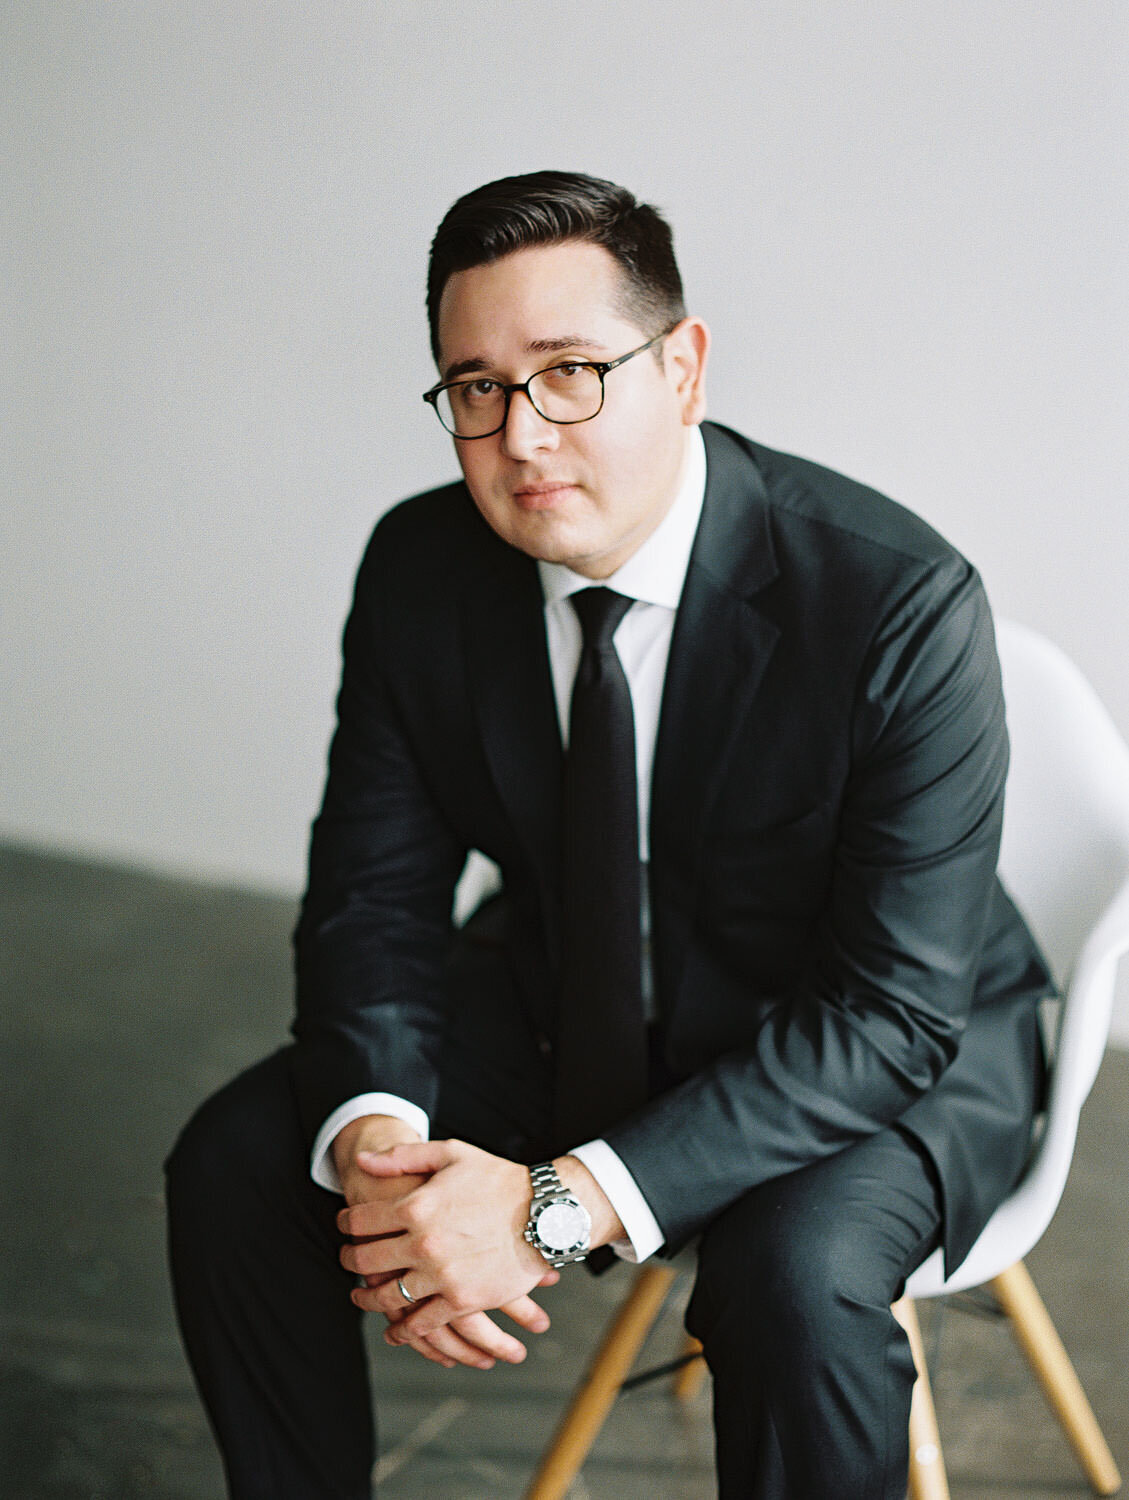 Man sitting in chair portrait black suit and glasses